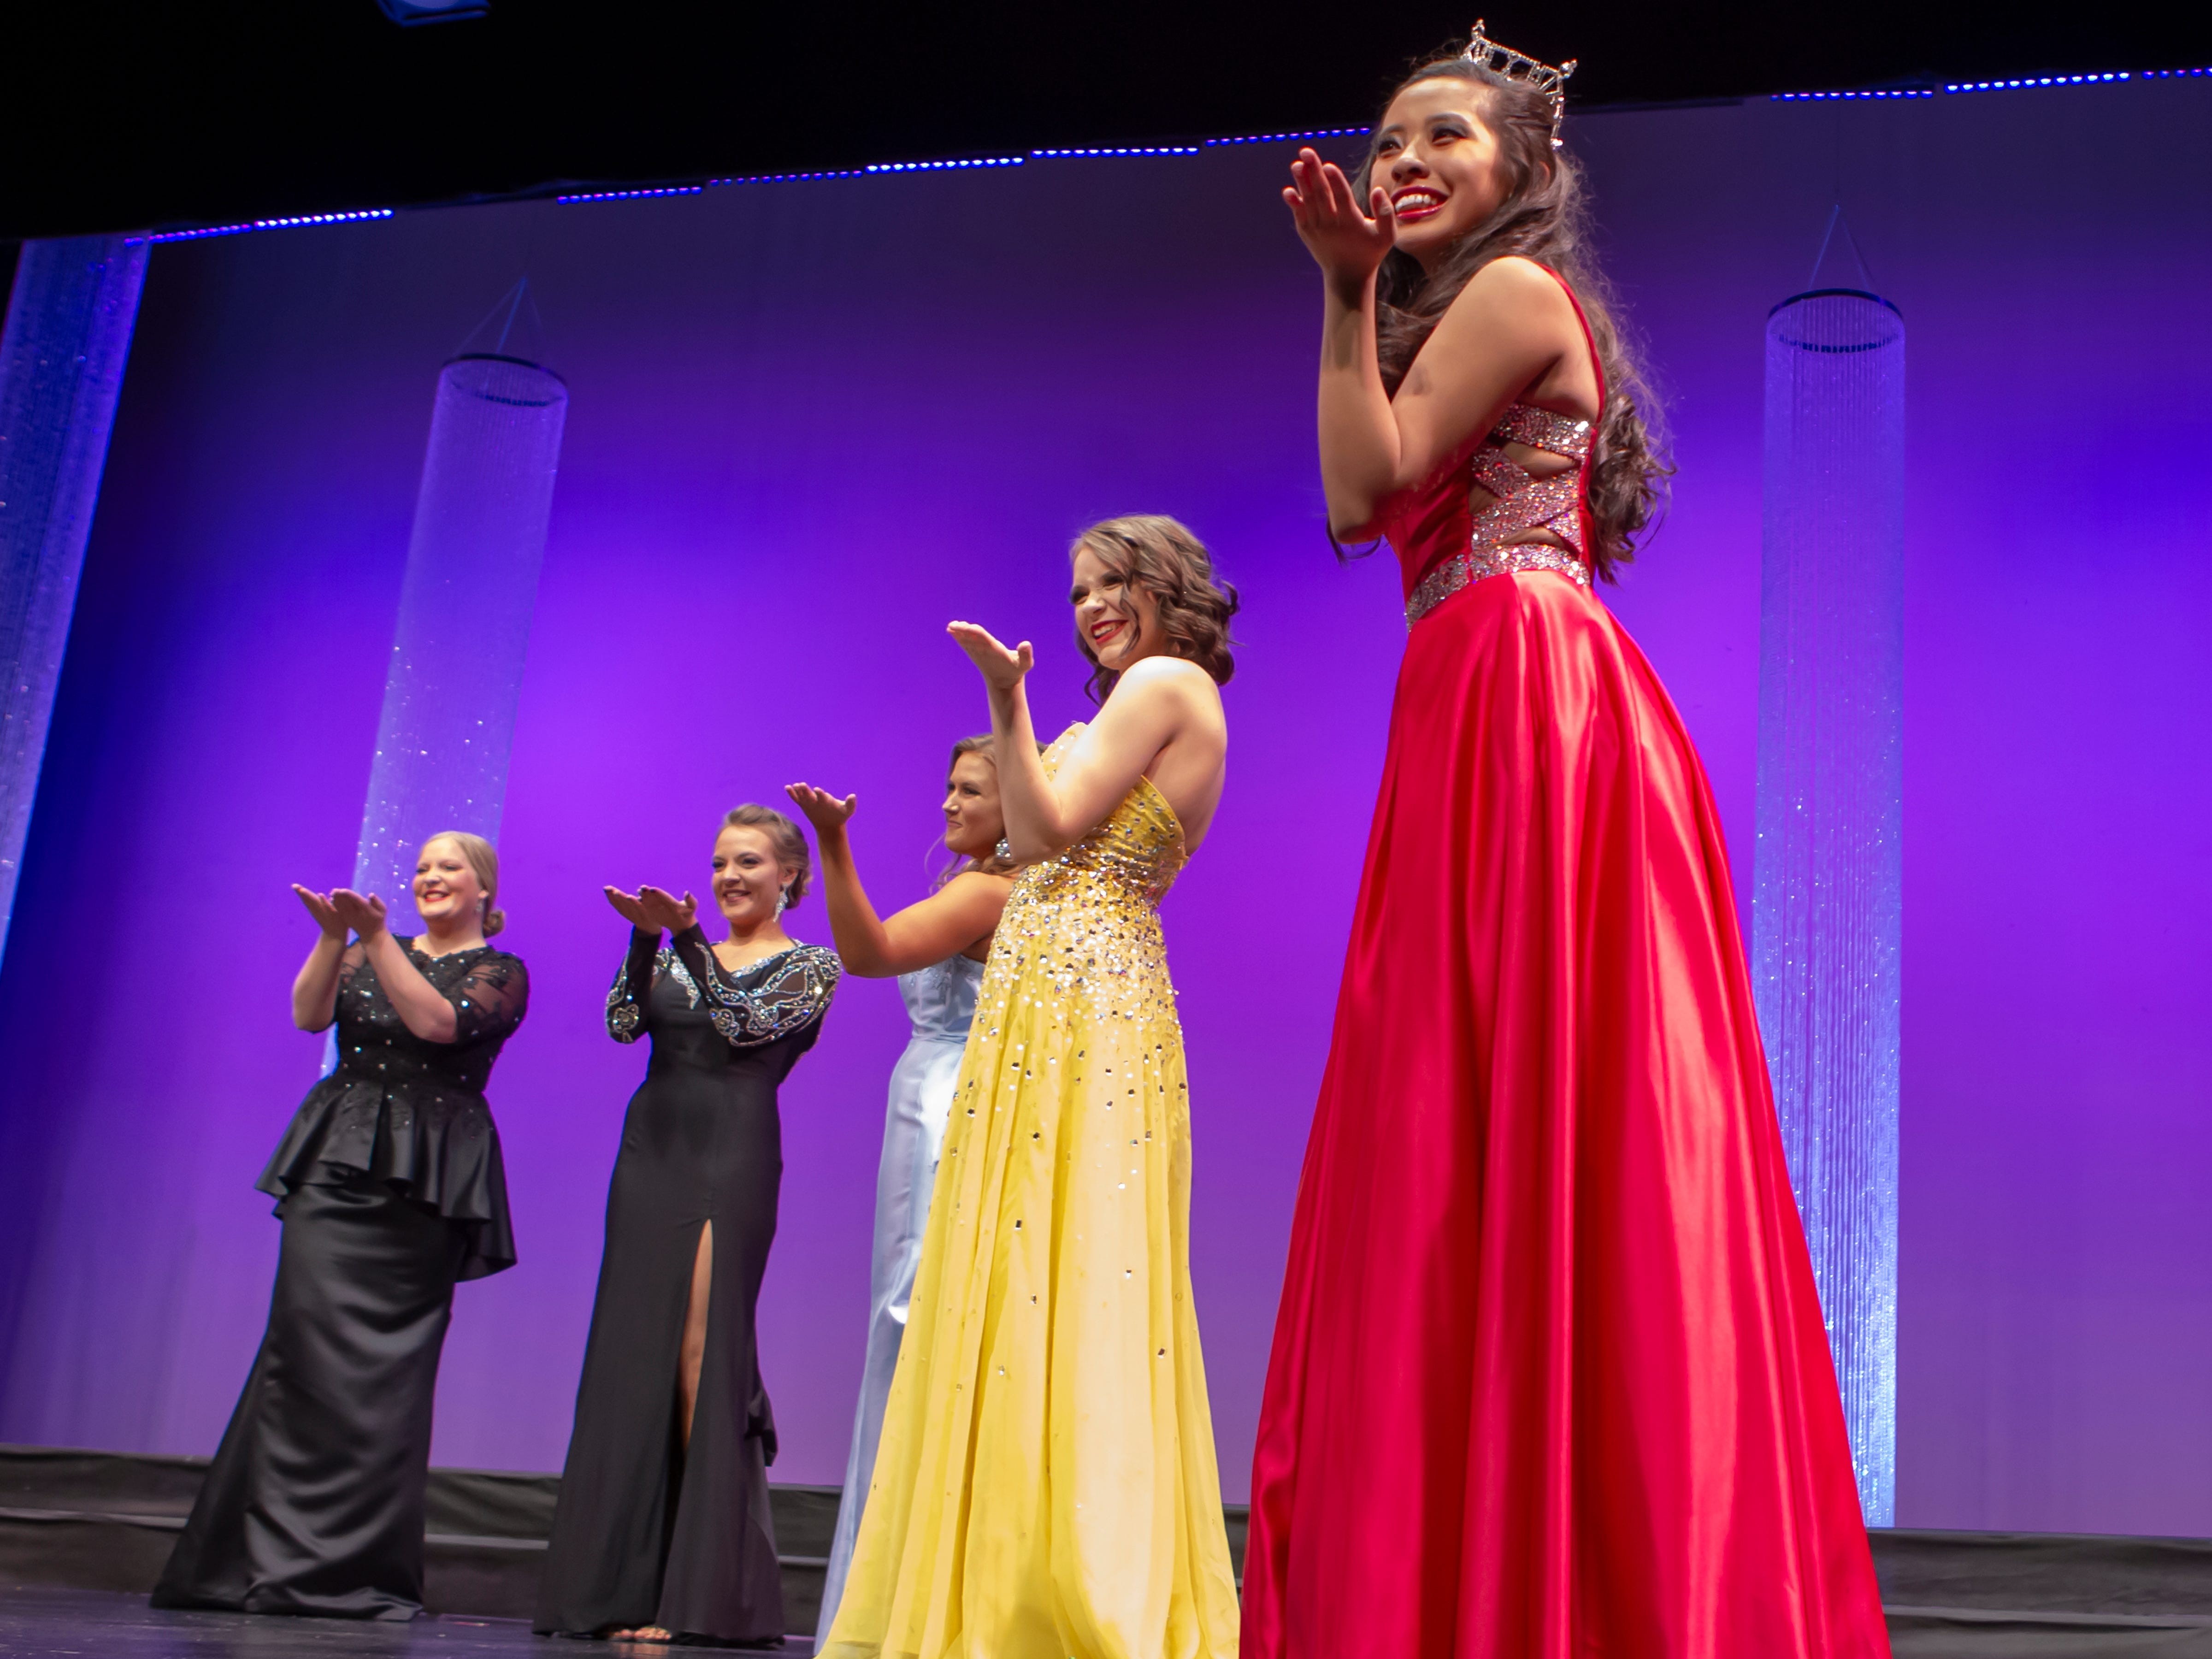 Participants compete in the Miss Oshkosh Scholarship Pageant and Miss Oshkosh's Outstanding Teen pageant Saturday, March 2, 2019, at Alberta Kimball Auditorium in Oshkosh, Wis.